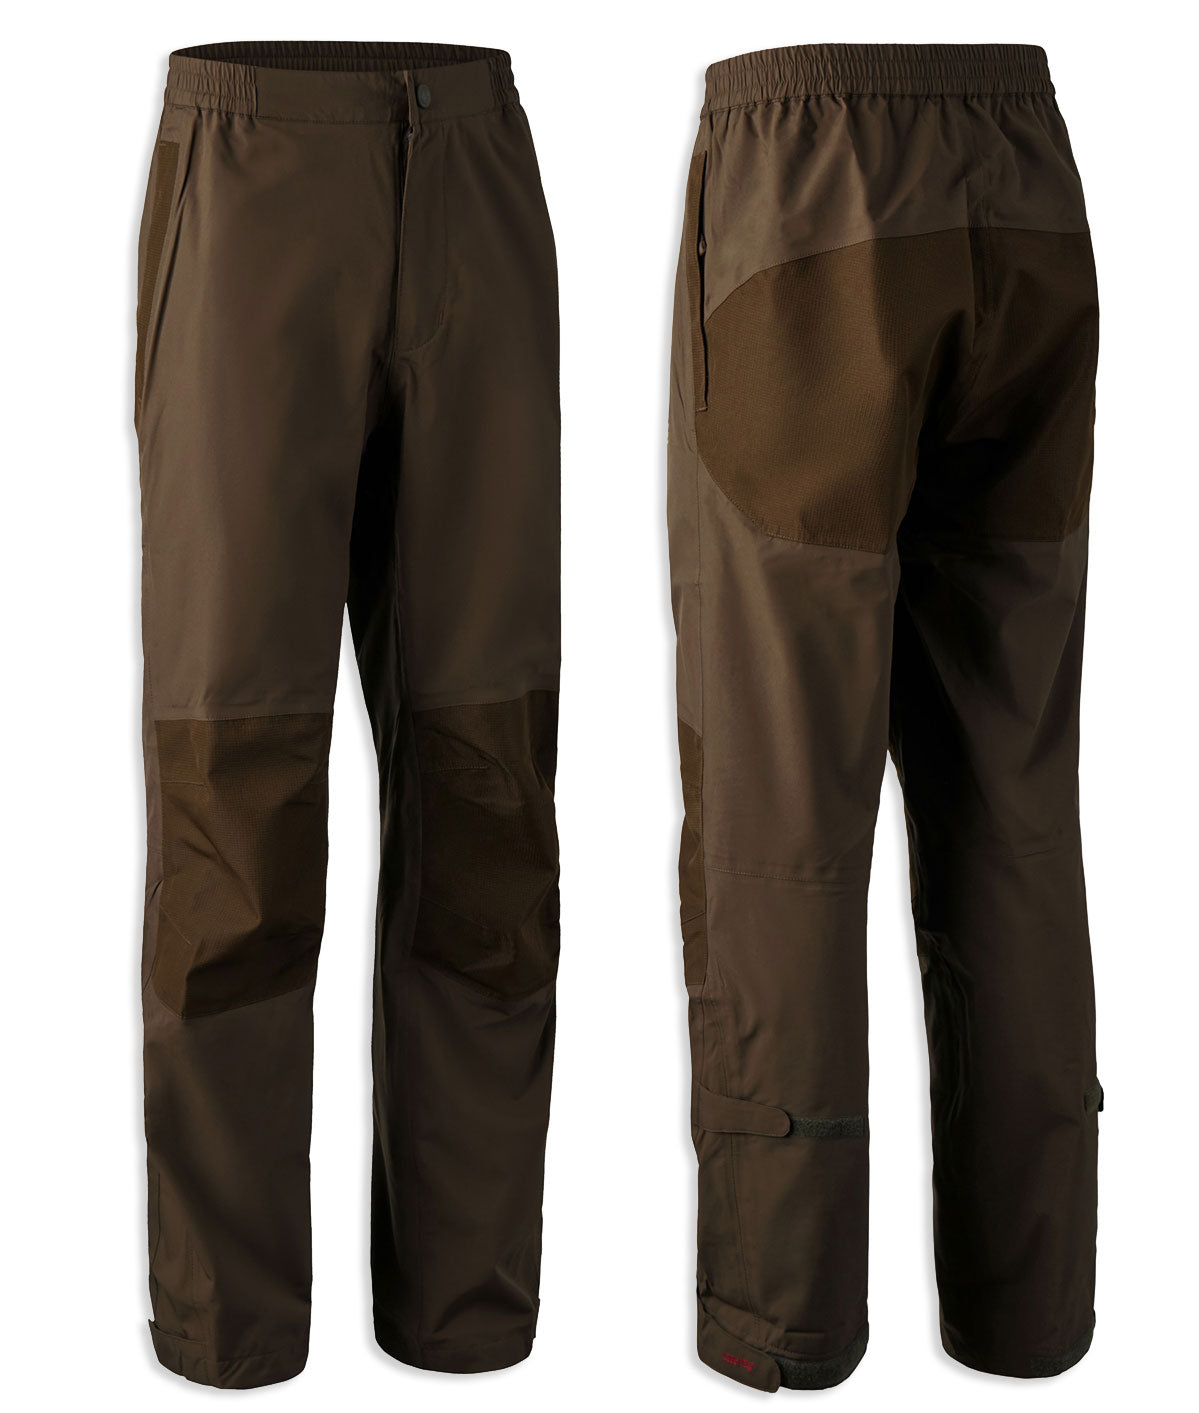 Track Waterproof Rain Trousers by Deerhunter